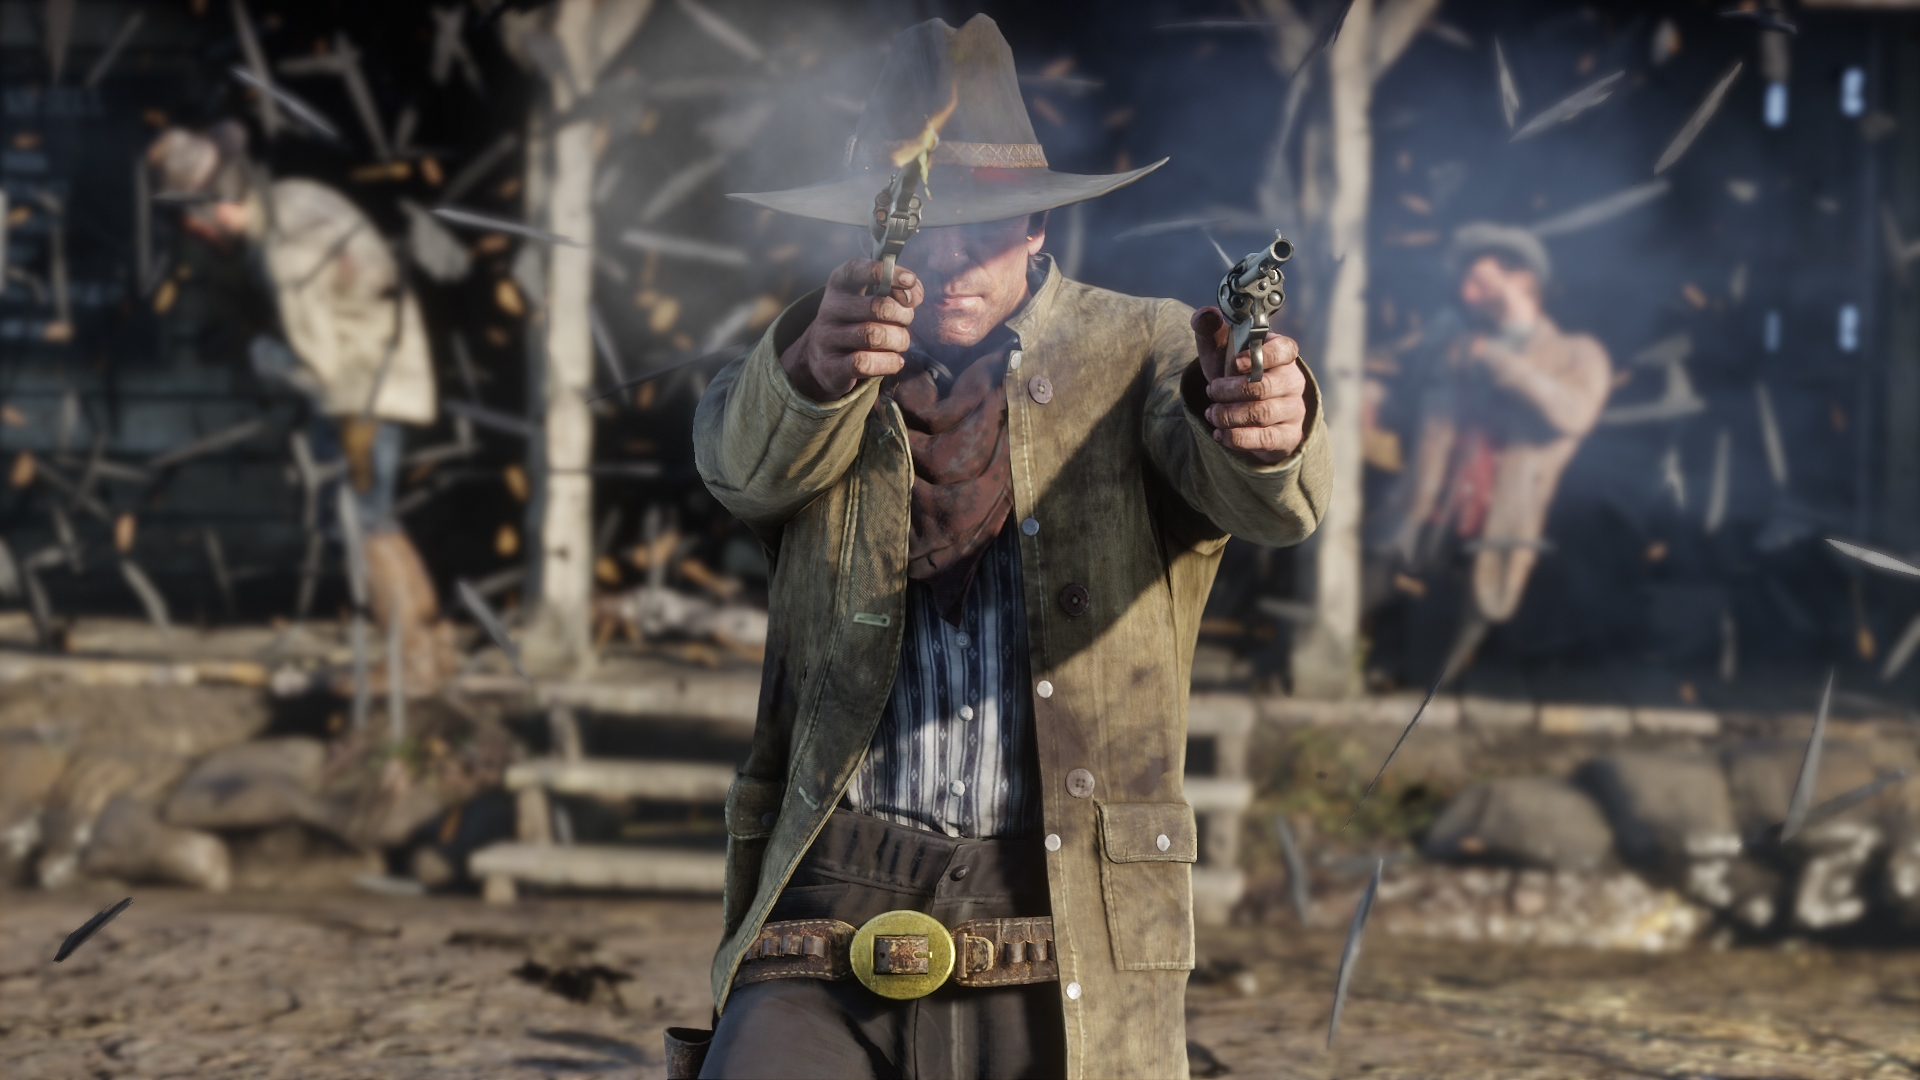 Red Dead Redemption 2 | PS4/X1 | 10/26/2018 Cfb666840877705bcb1d4c35e171c43431d3f3f0